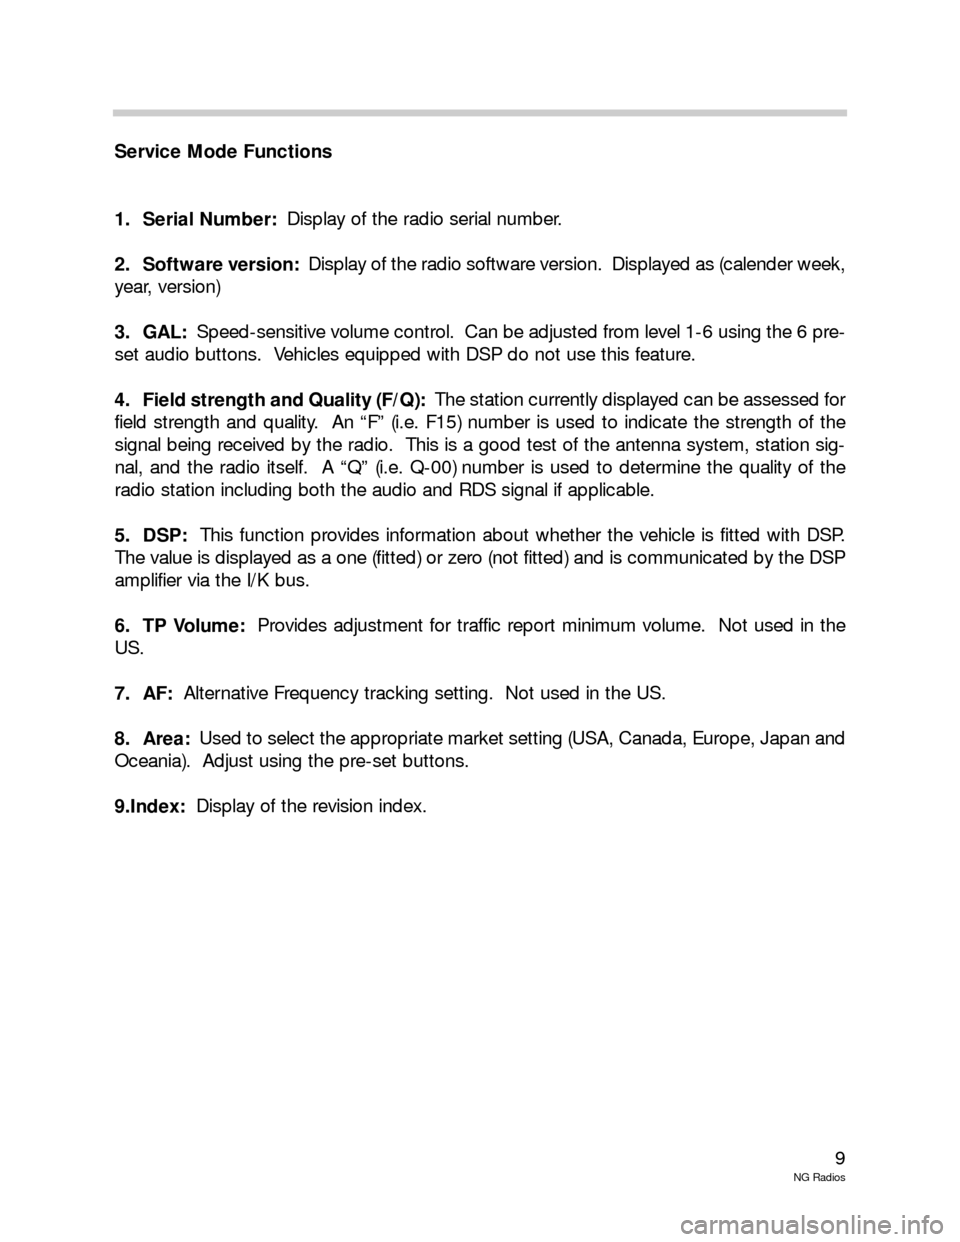 BMW 5 SERIES 2001 E39 New Generation Radios Manual, Page 9